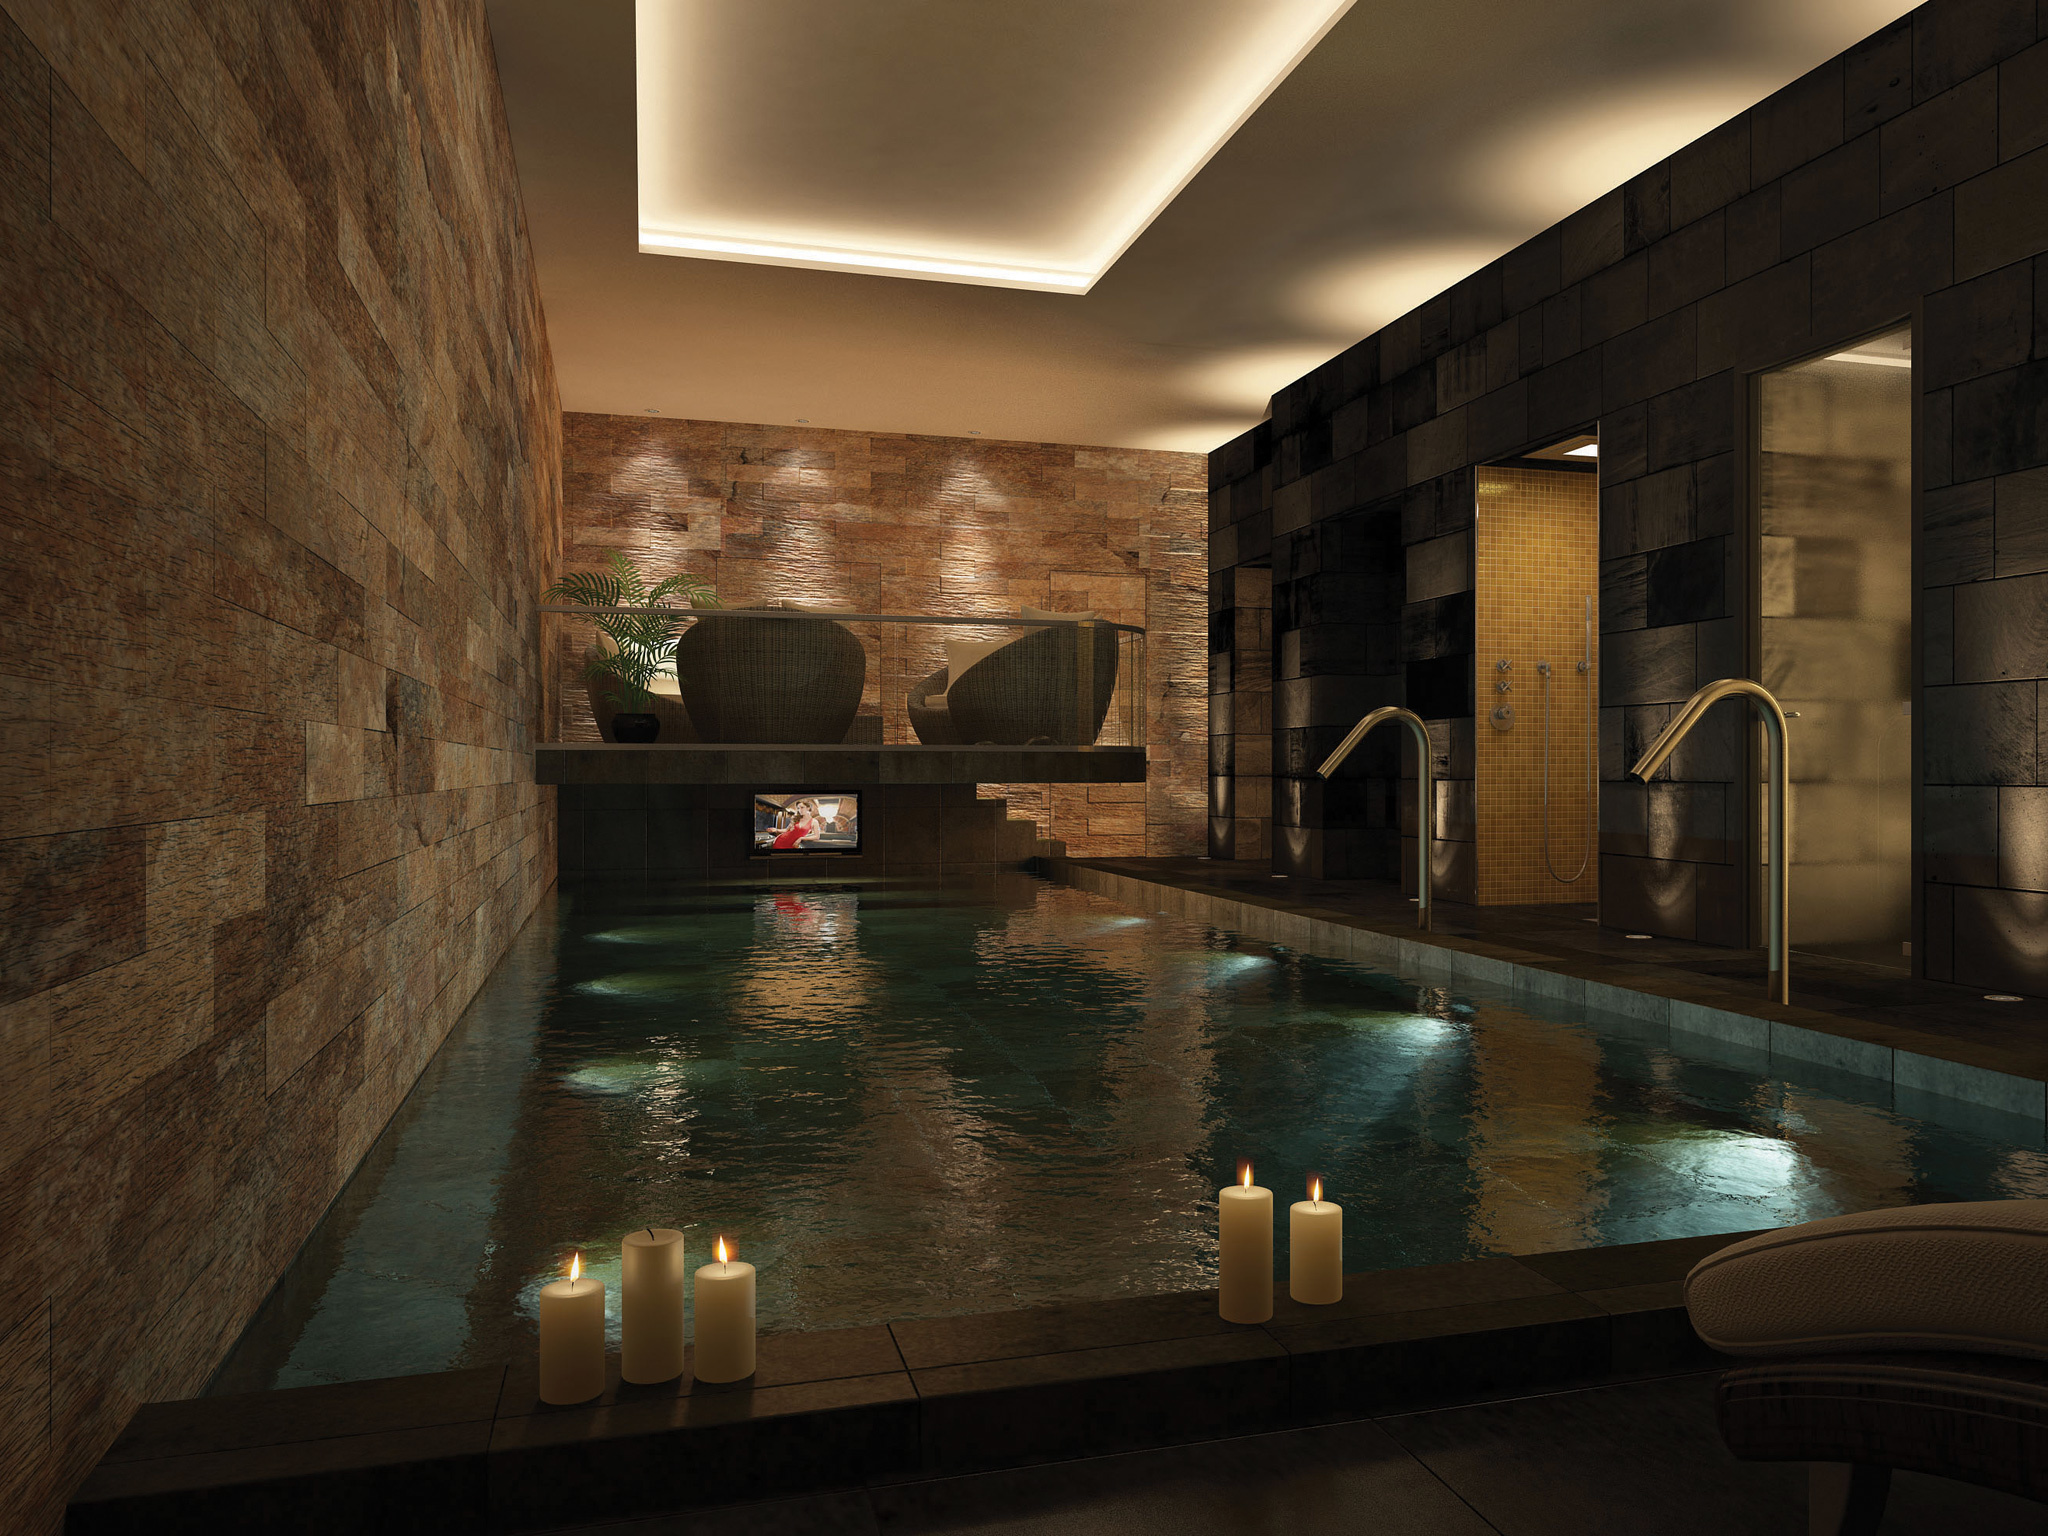 Eforea spa at DoubleTree Hilton hotel in Liverpool